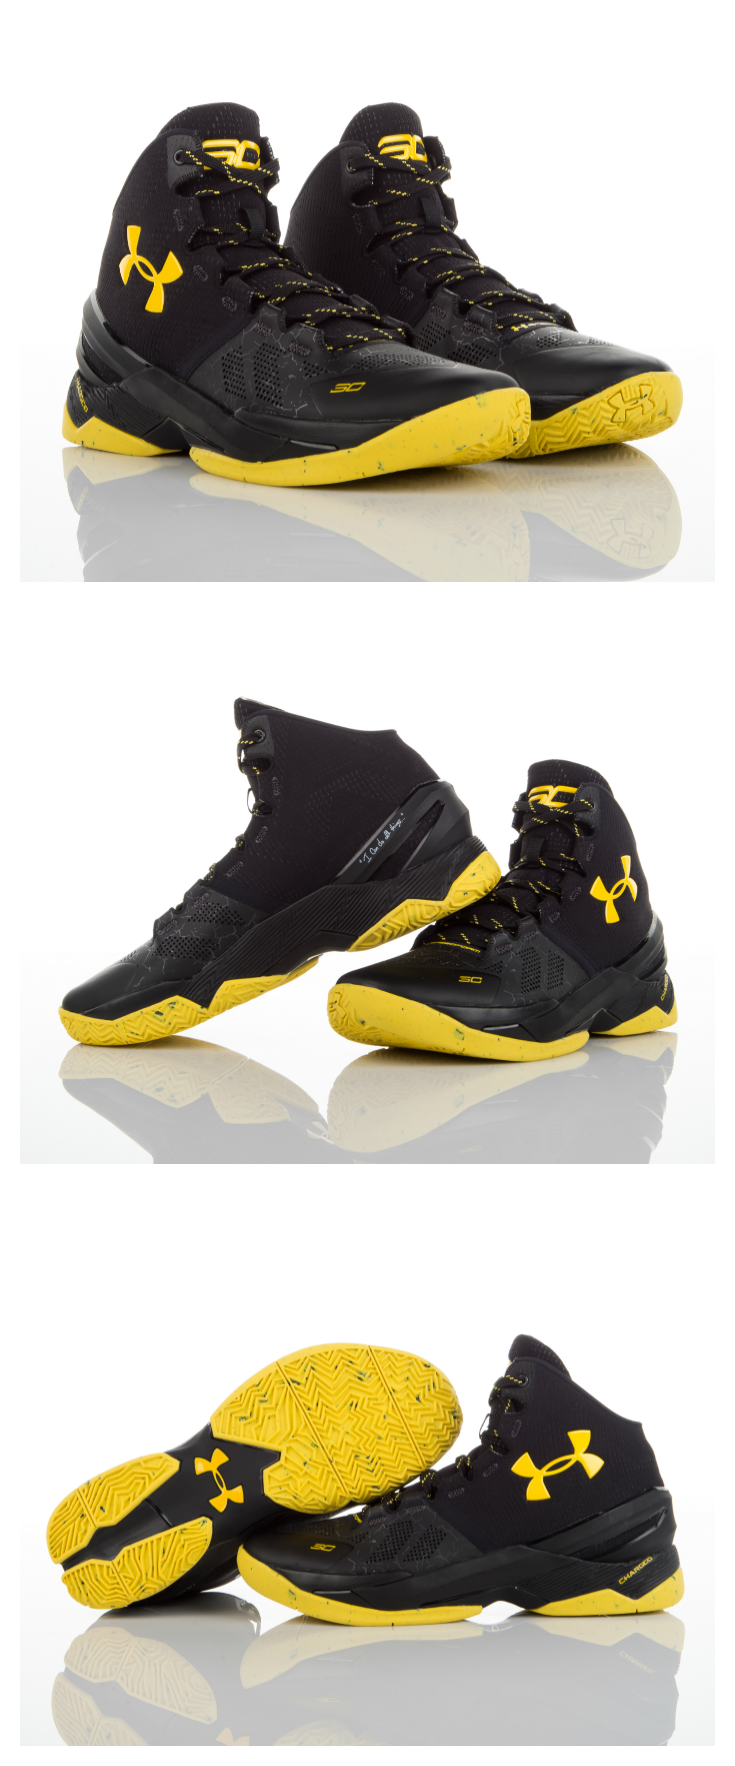 official photos 2f338 66b11 If you want to ball like Stephen Curry, why not lace up like him  Get the latest  Under Armour Curry 2s.